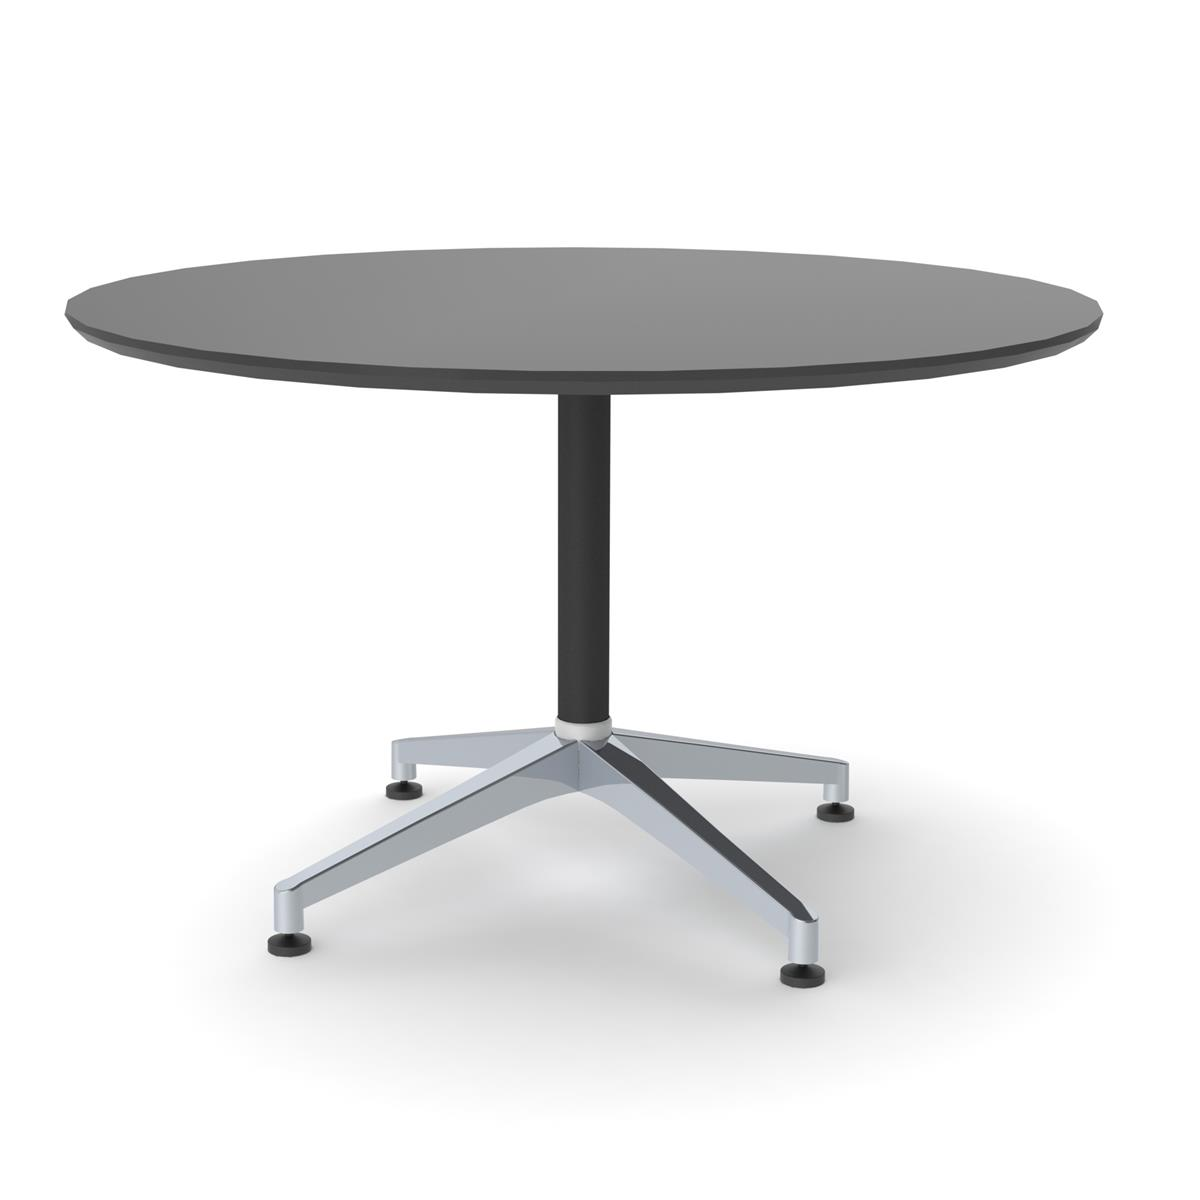 X1 Seamless Table Ø120 cm - sort linoleum & sort/alu understell